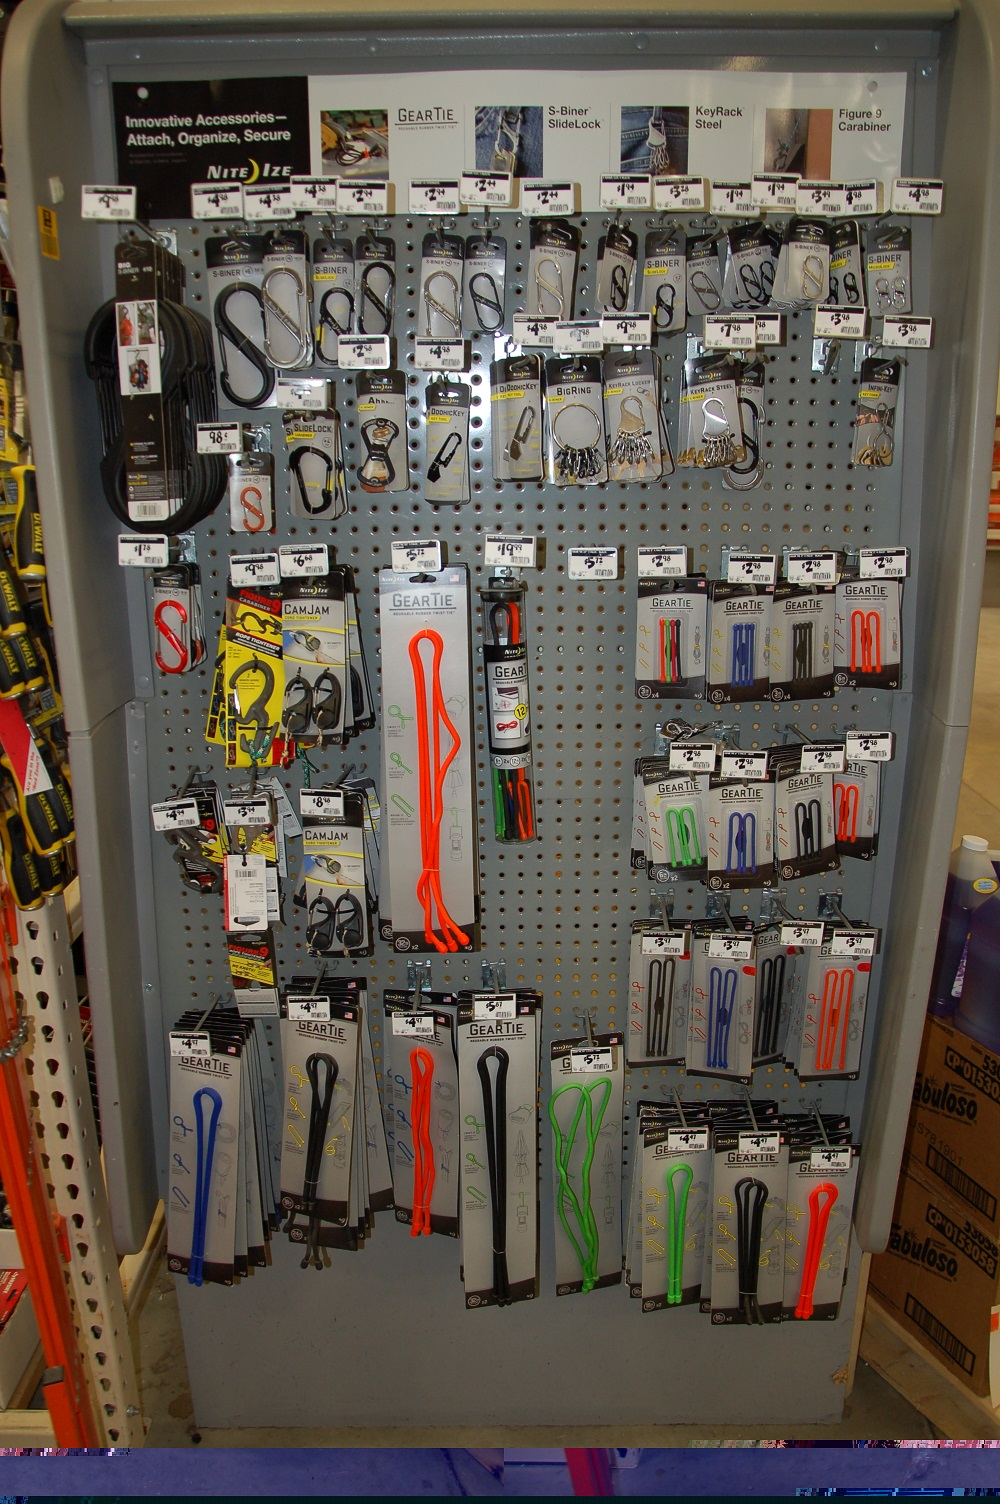 Basic Essential Series-Carabiners, Gear Ties, and Cable Ties